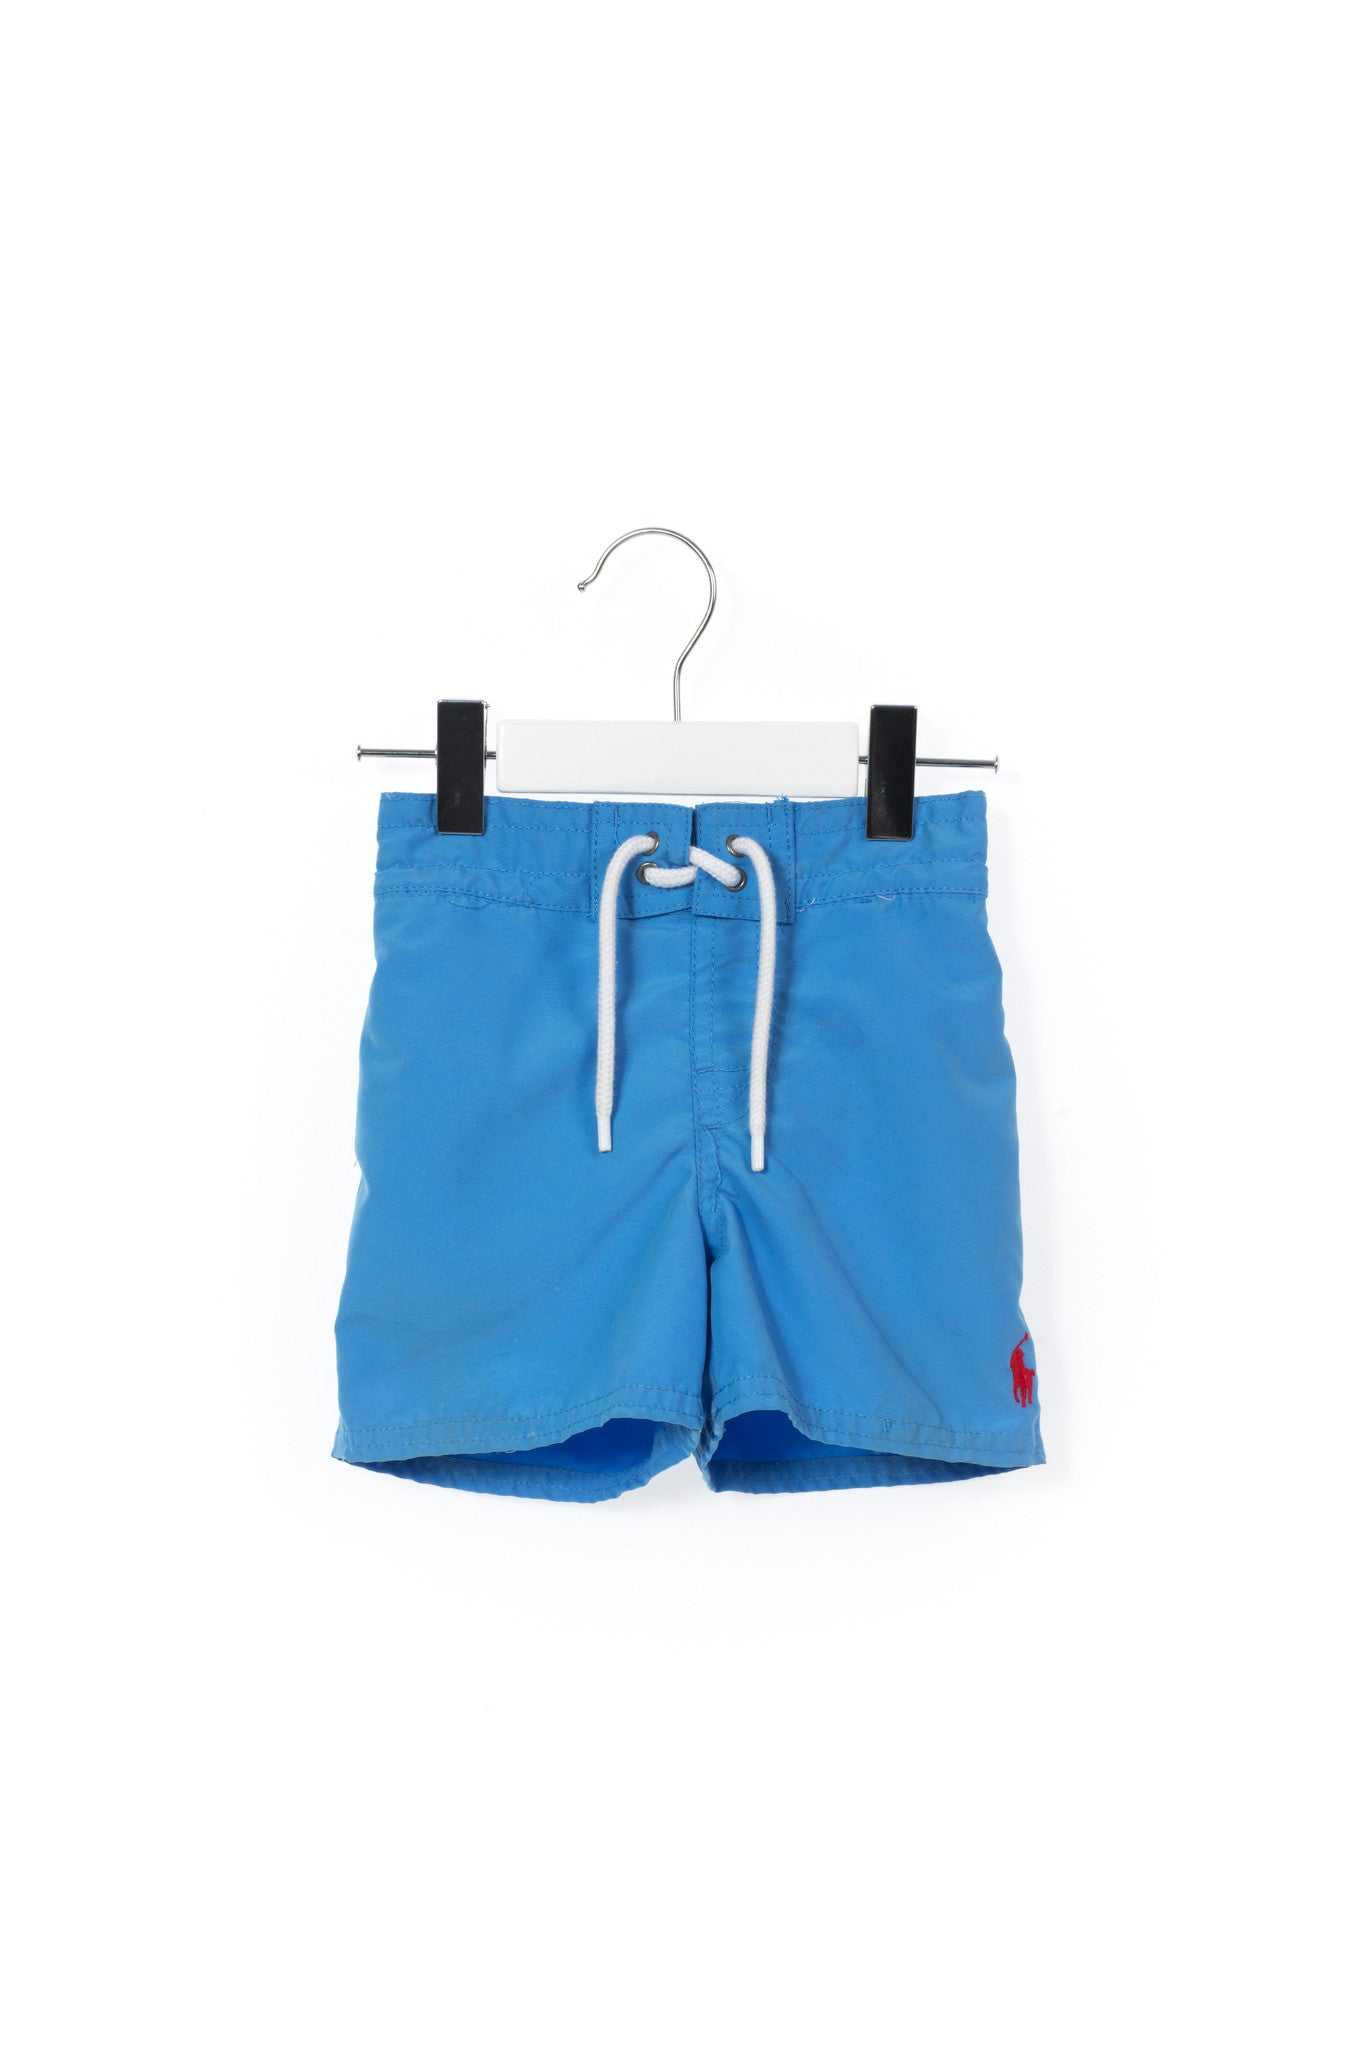 Swimwear 12M, Polo Ralph Lauren at Retykle - Online Baby & Kids Clothing Up to 90% Off